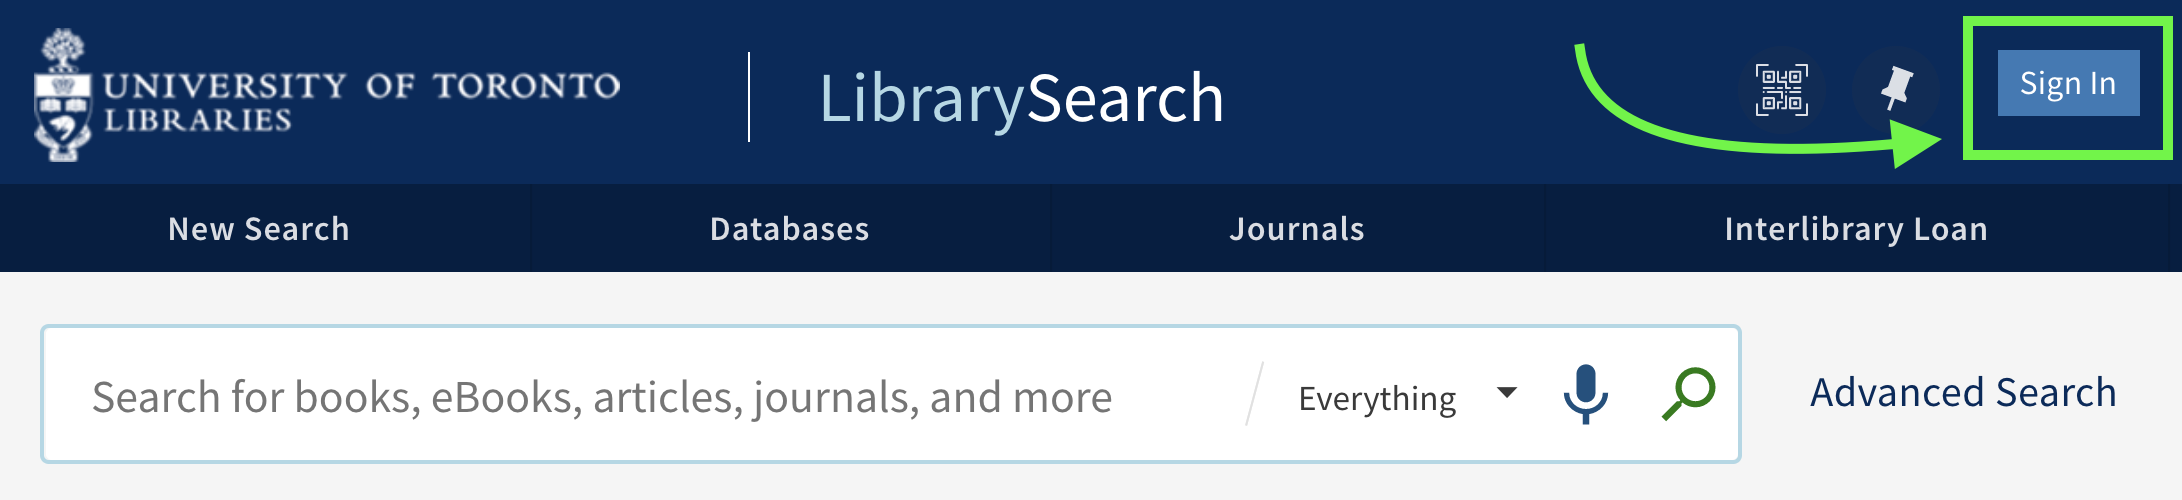 Sign In button located in top right corner of LibrarySearch interface